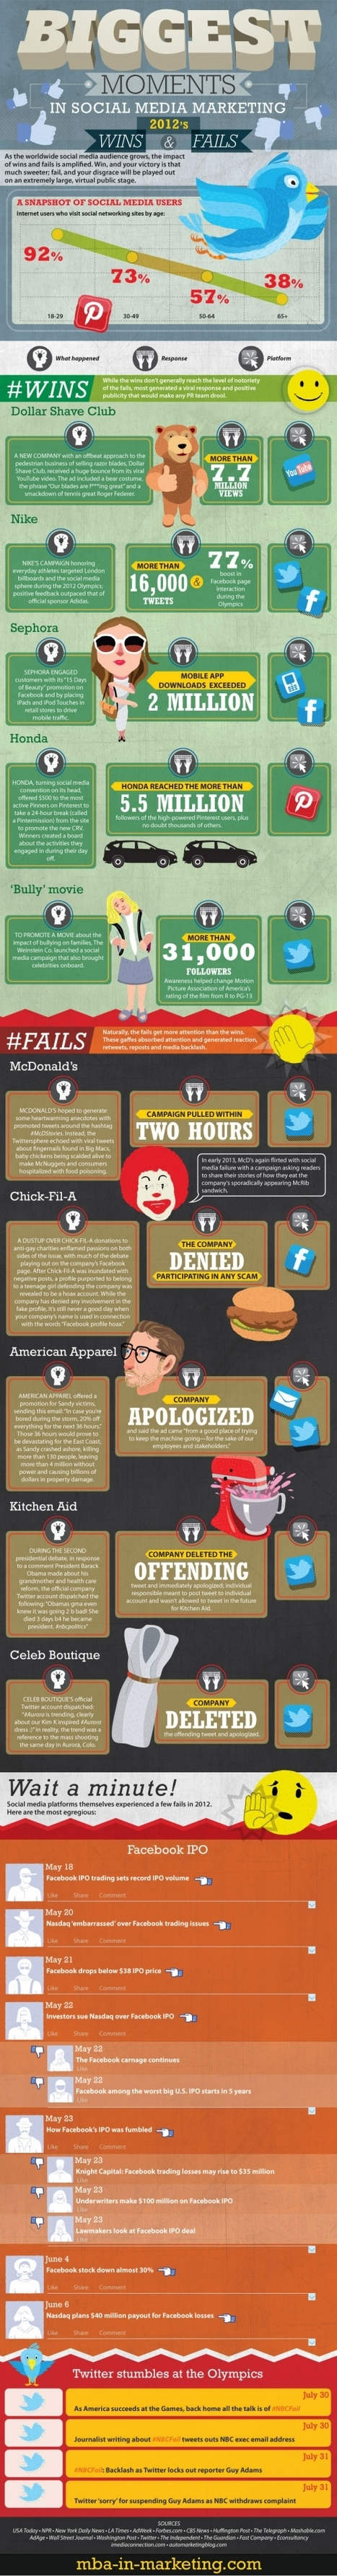 Social Media Highs and Lows of 2012 [Infographics] | Internet marketing, SEO, SMO, PPC, Wordpress | Scoop.it